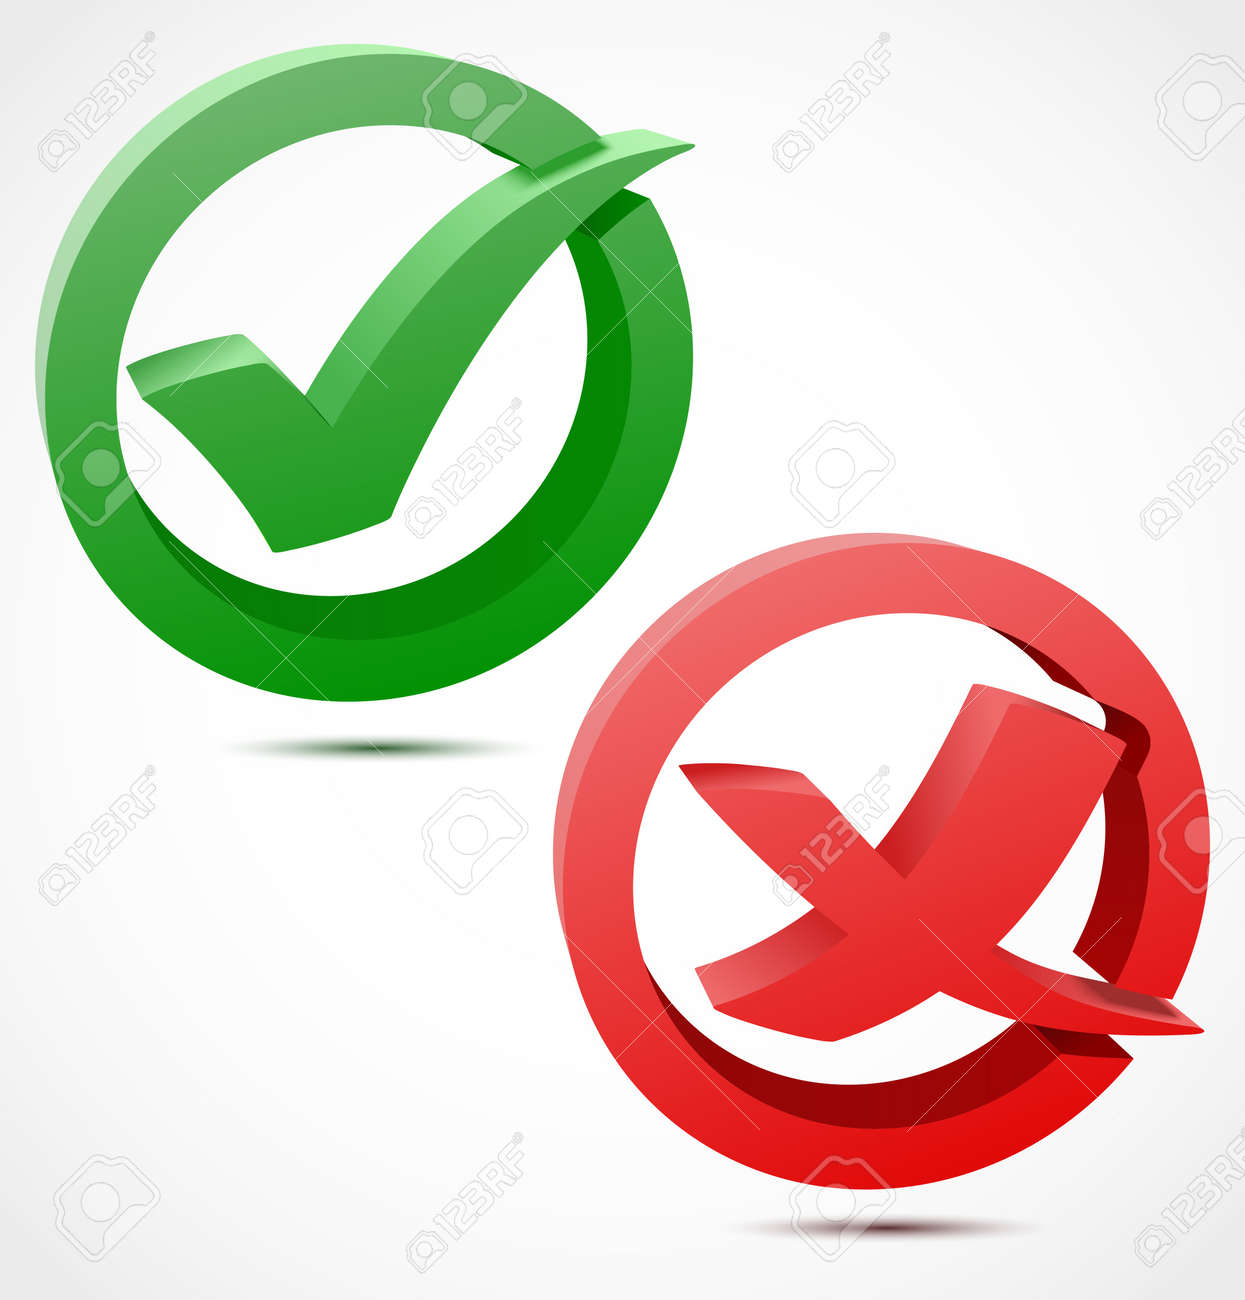 3d Green And Red Check Mark Symbols